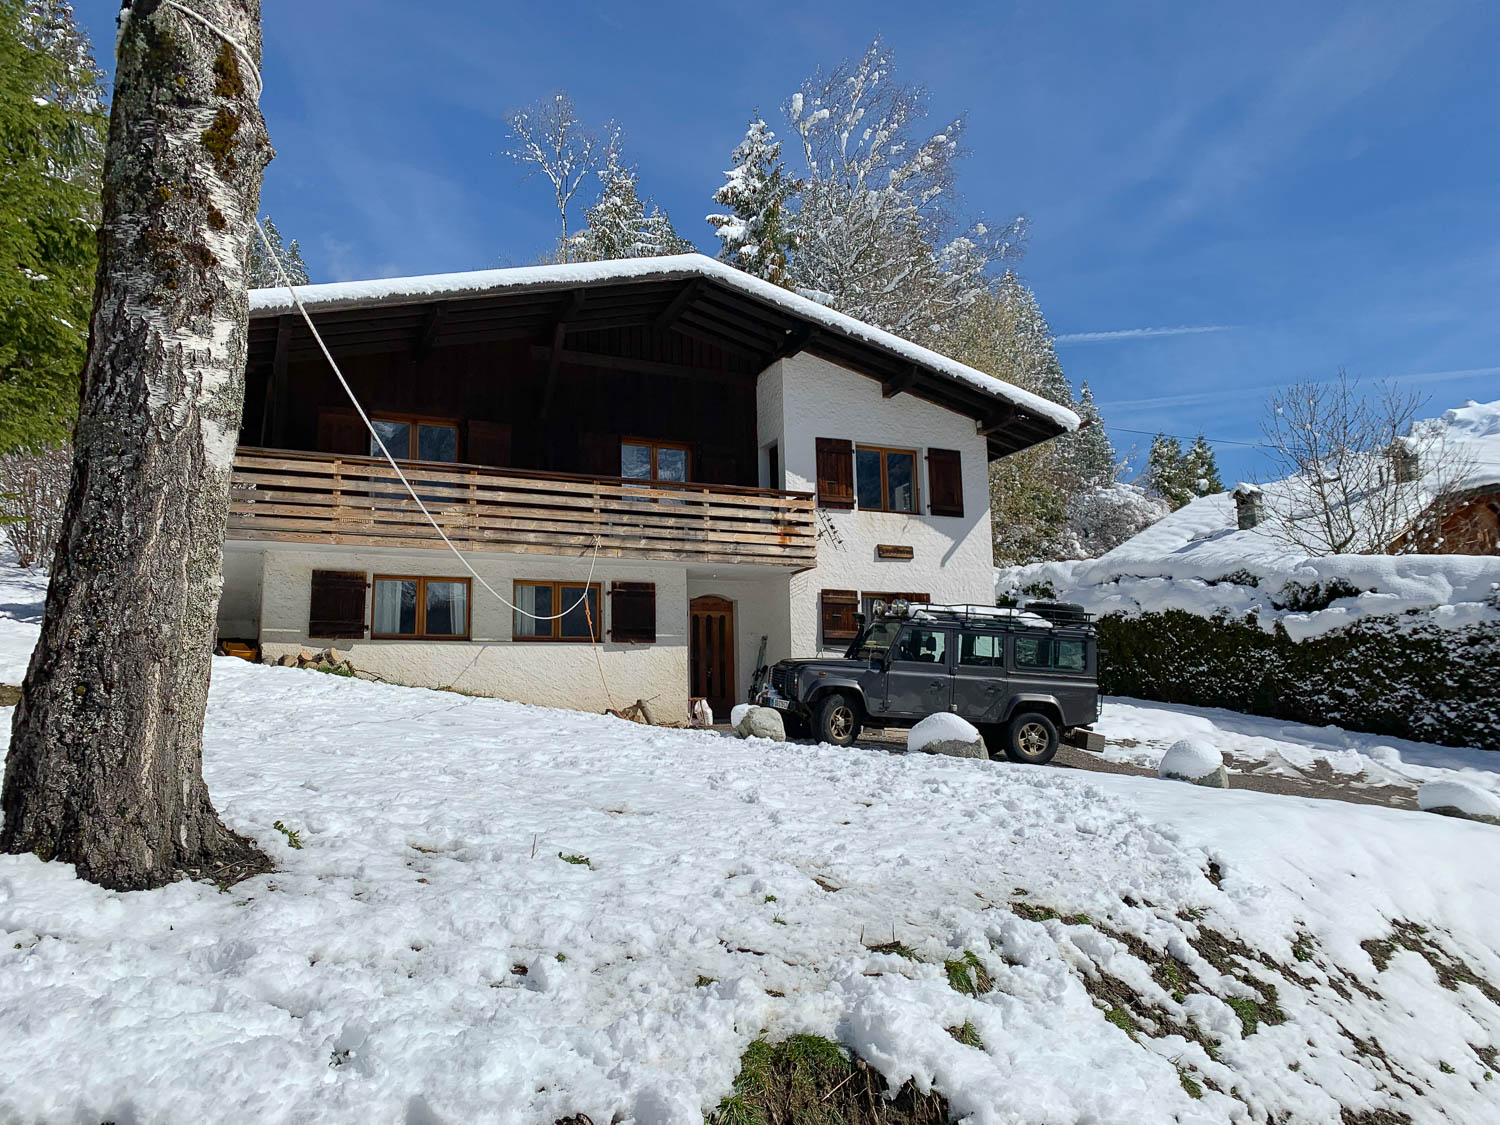 Chalet with land in Chamonix Les Pécles